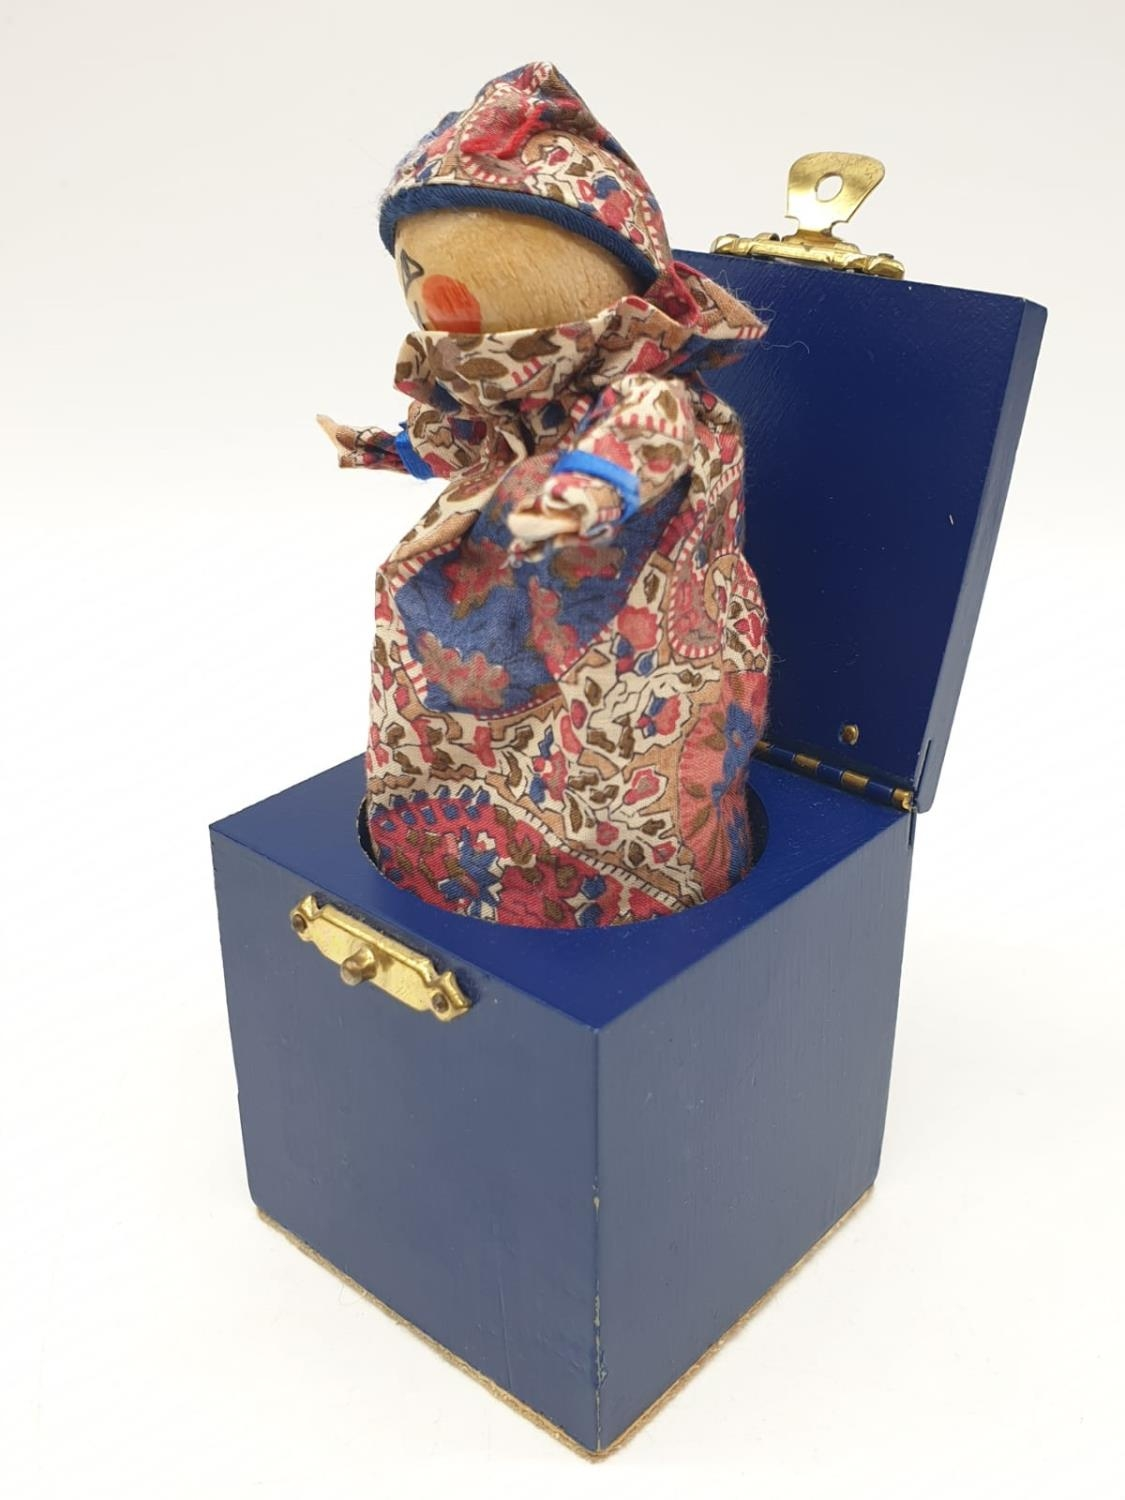 Liberties of London 'Jack in the box'. Size 6.5cm x 5cm. - Image 4 of 4